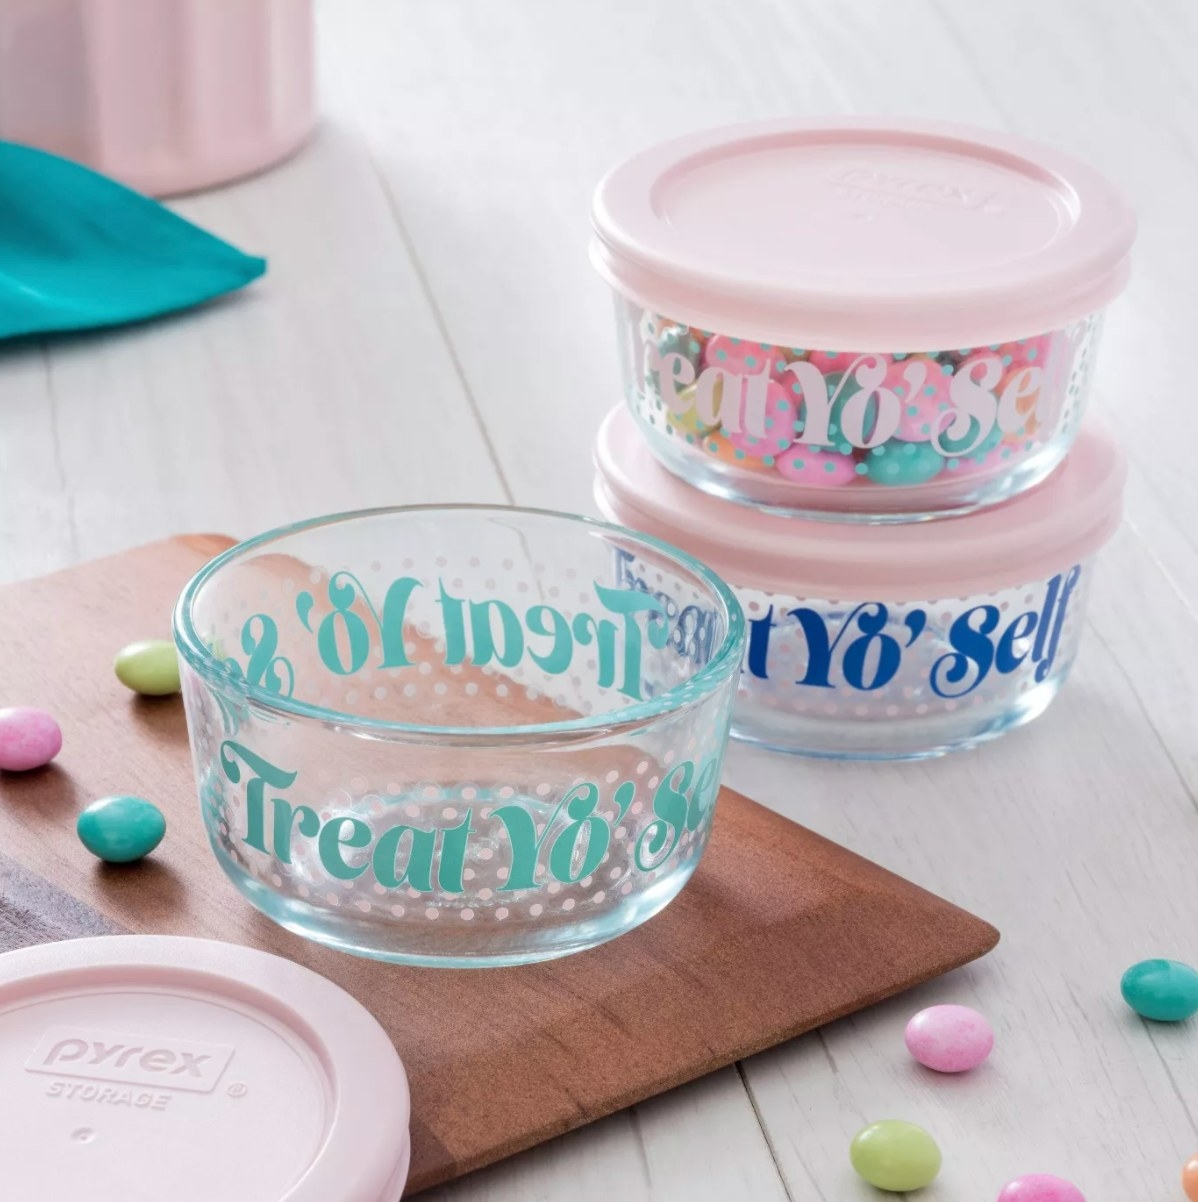 The bowls with pink or blue writing on the sides and pink lids